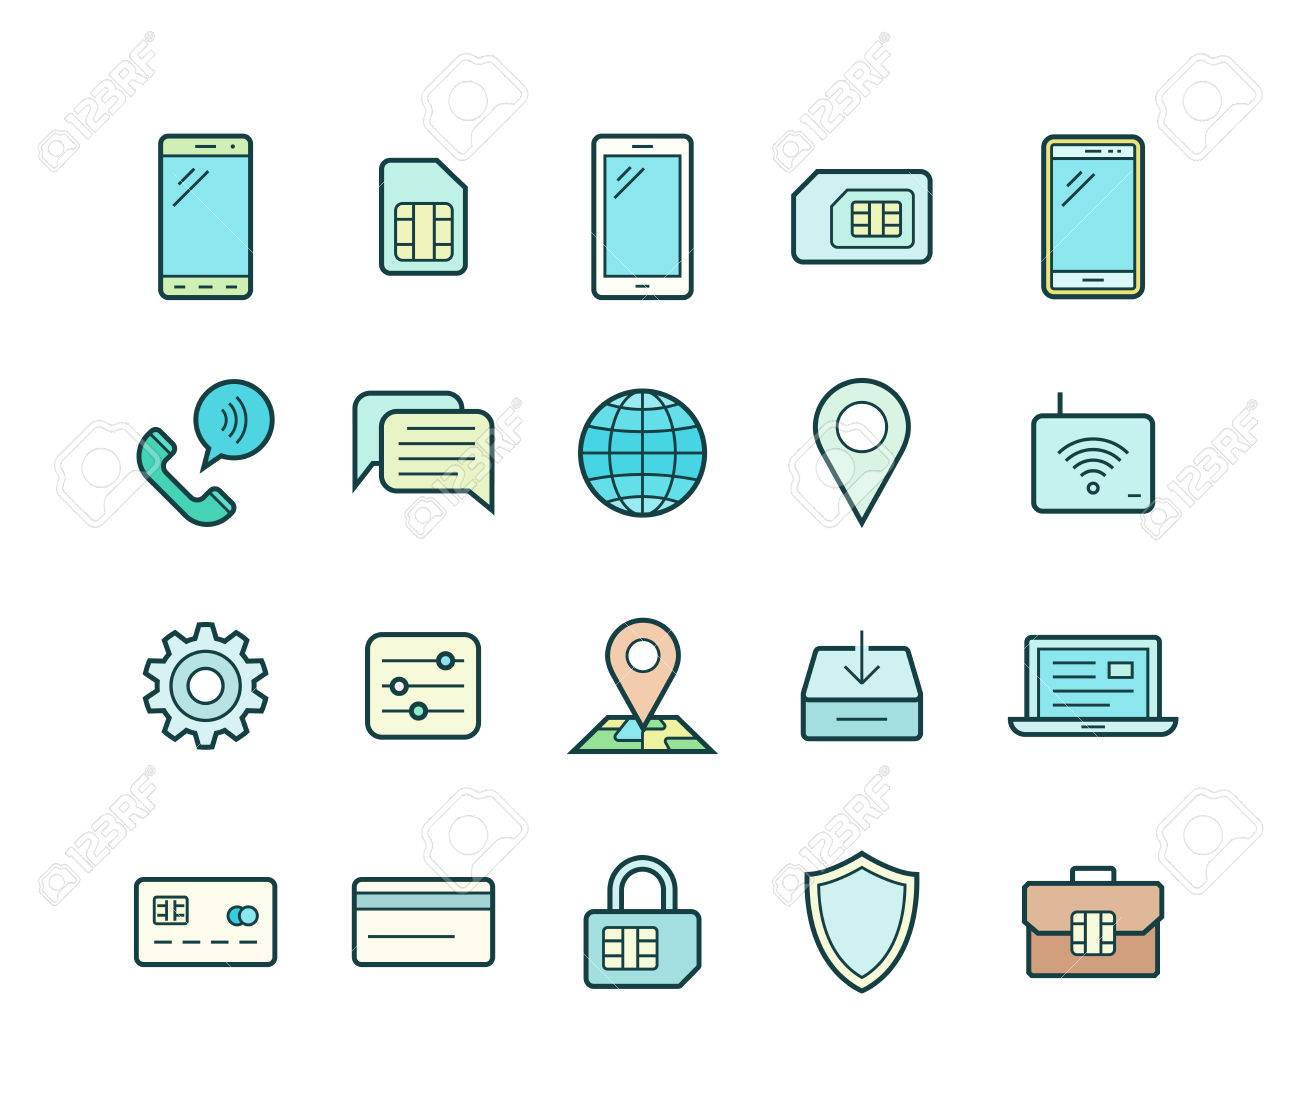 Mobile Network Operator Or Wireless Service Provider Icons. Vector ...